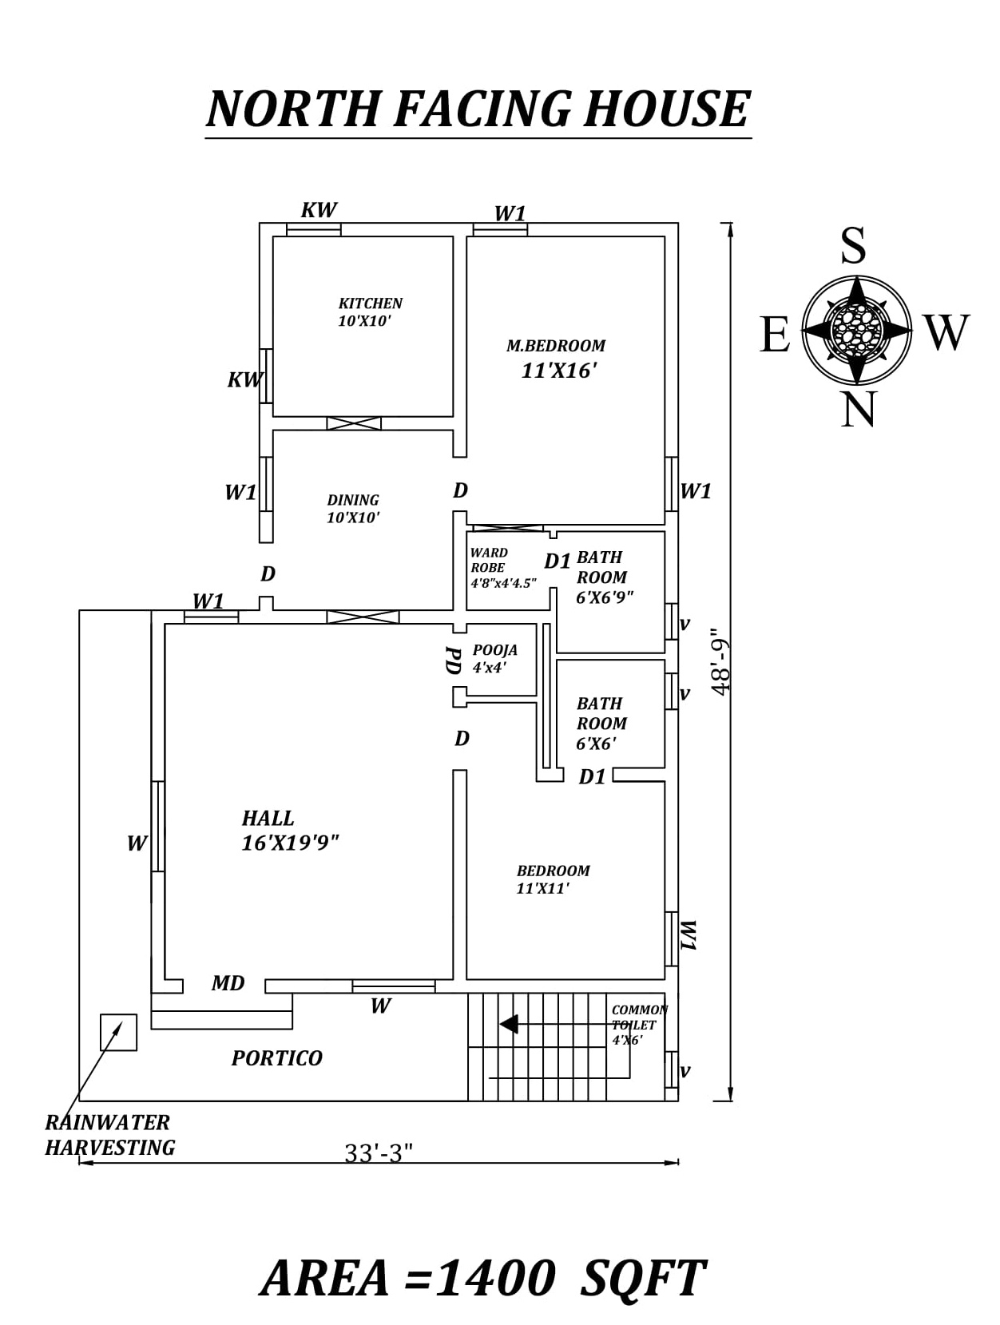 33 3 X48 9 Amazing North Facing 2bhk House Plan As Per Vastu Shastra Autocad Dwg And Pdf File 2bhk House Plan North Facing House 20x30 House Plans